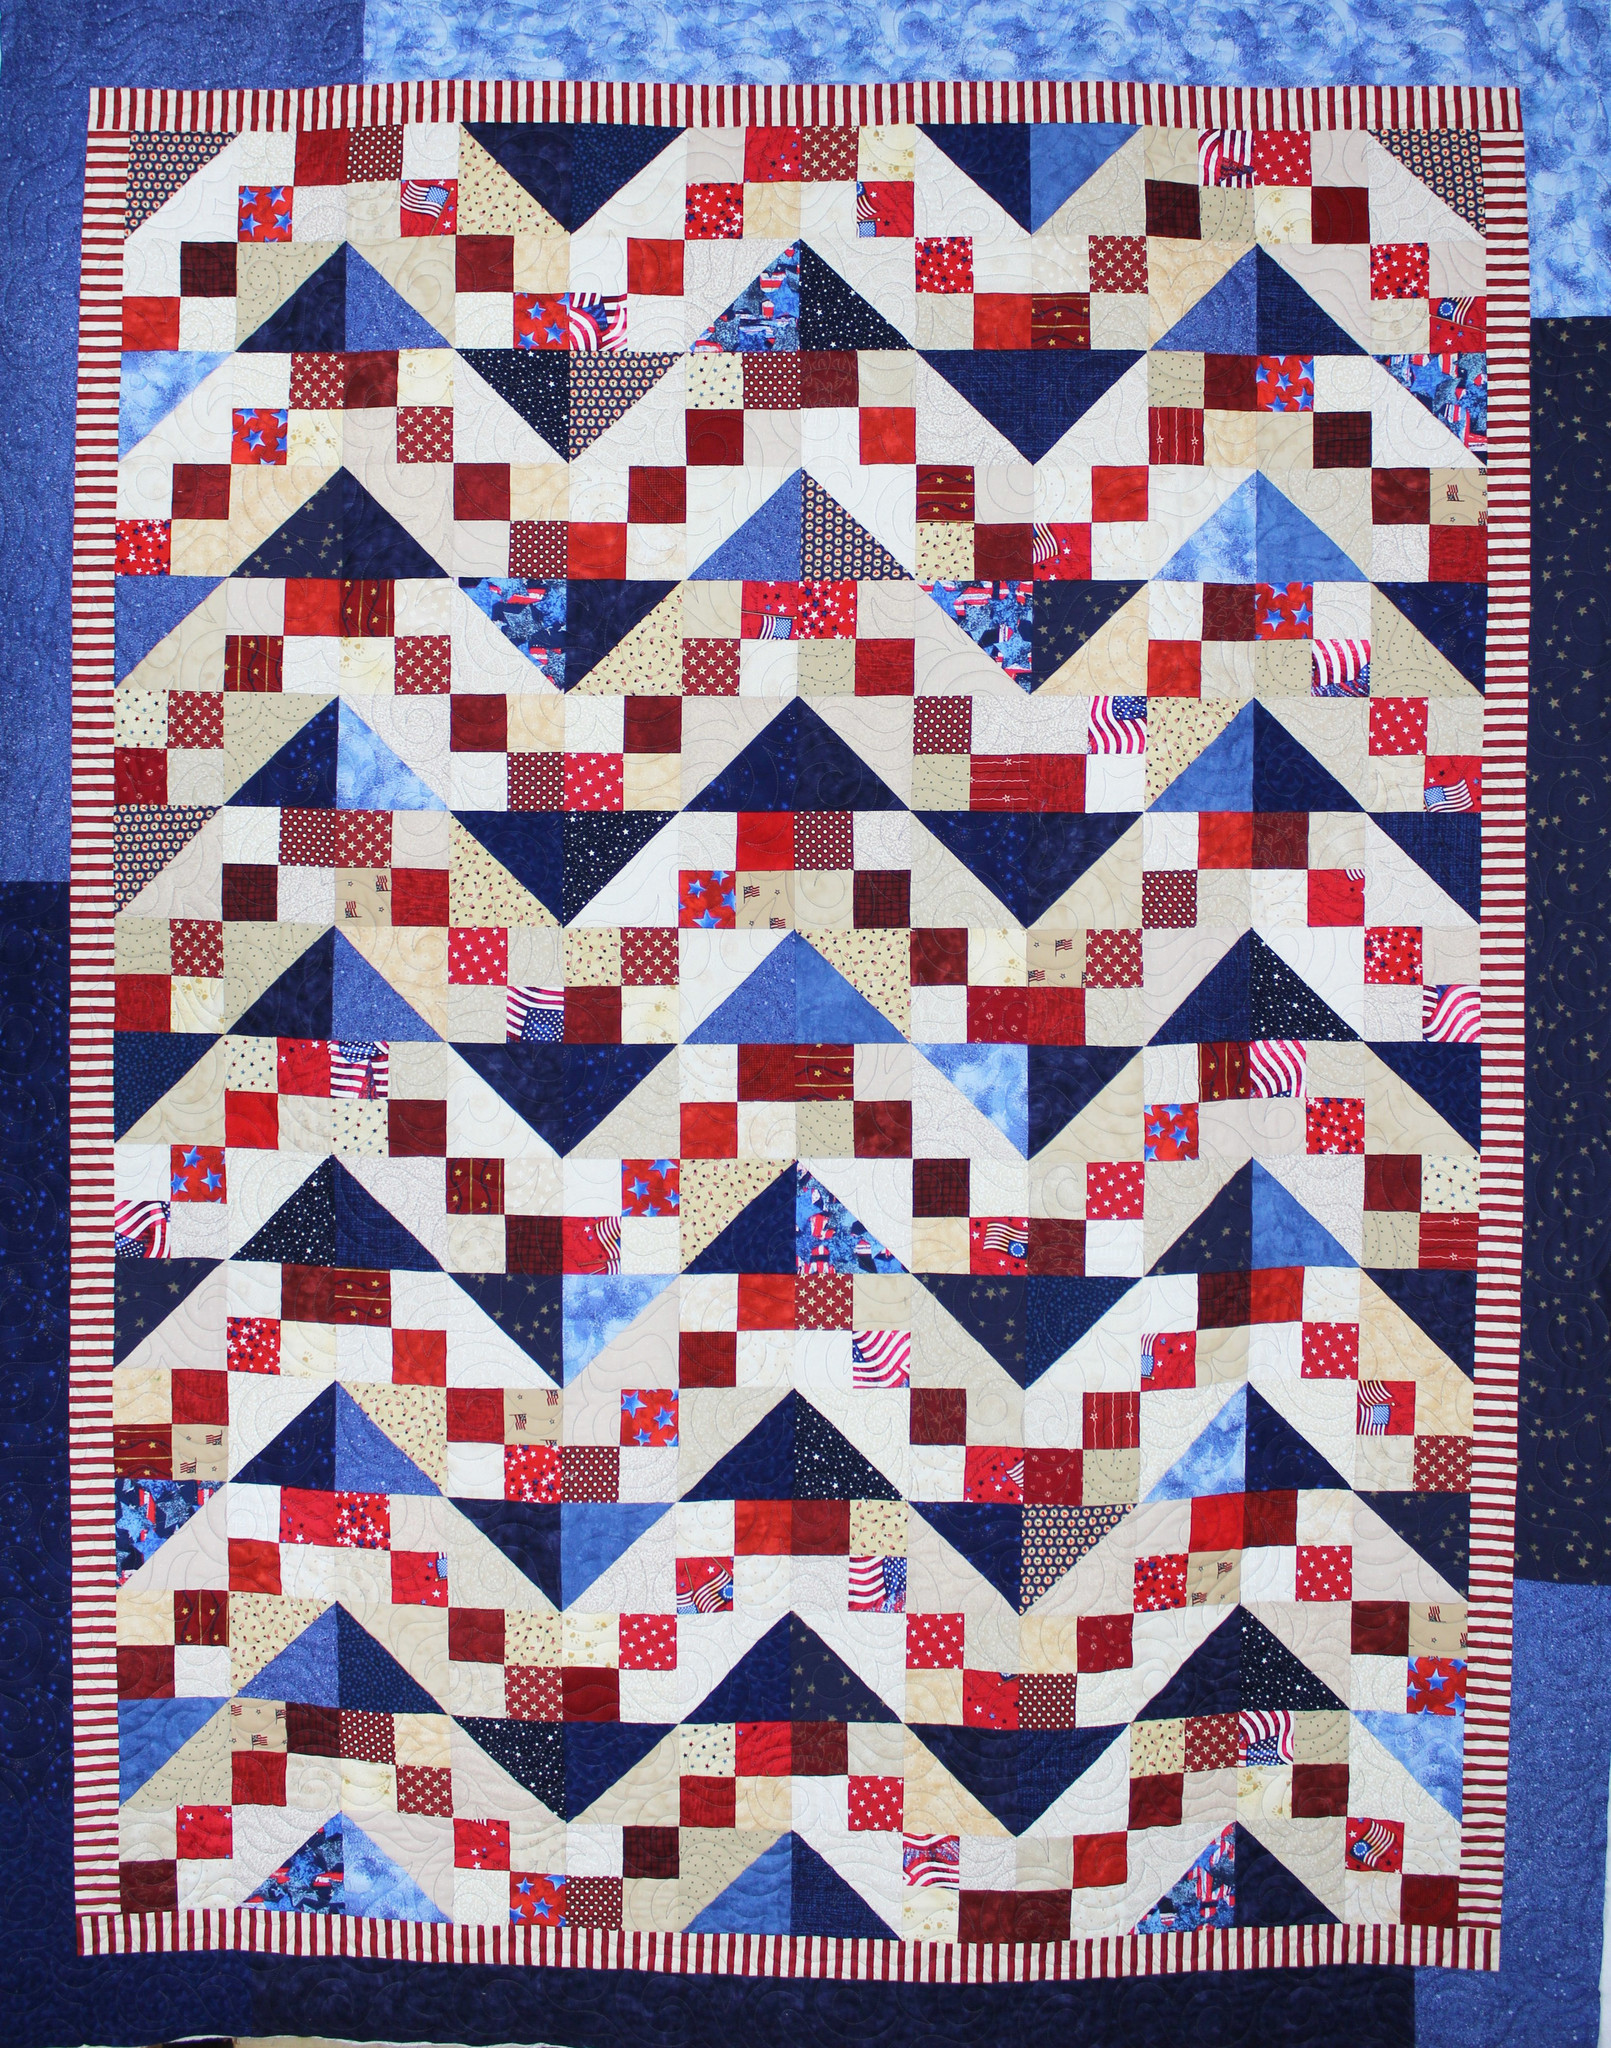 An example of a patriotic quilt sewn by the Poway Quilts of Valor group.